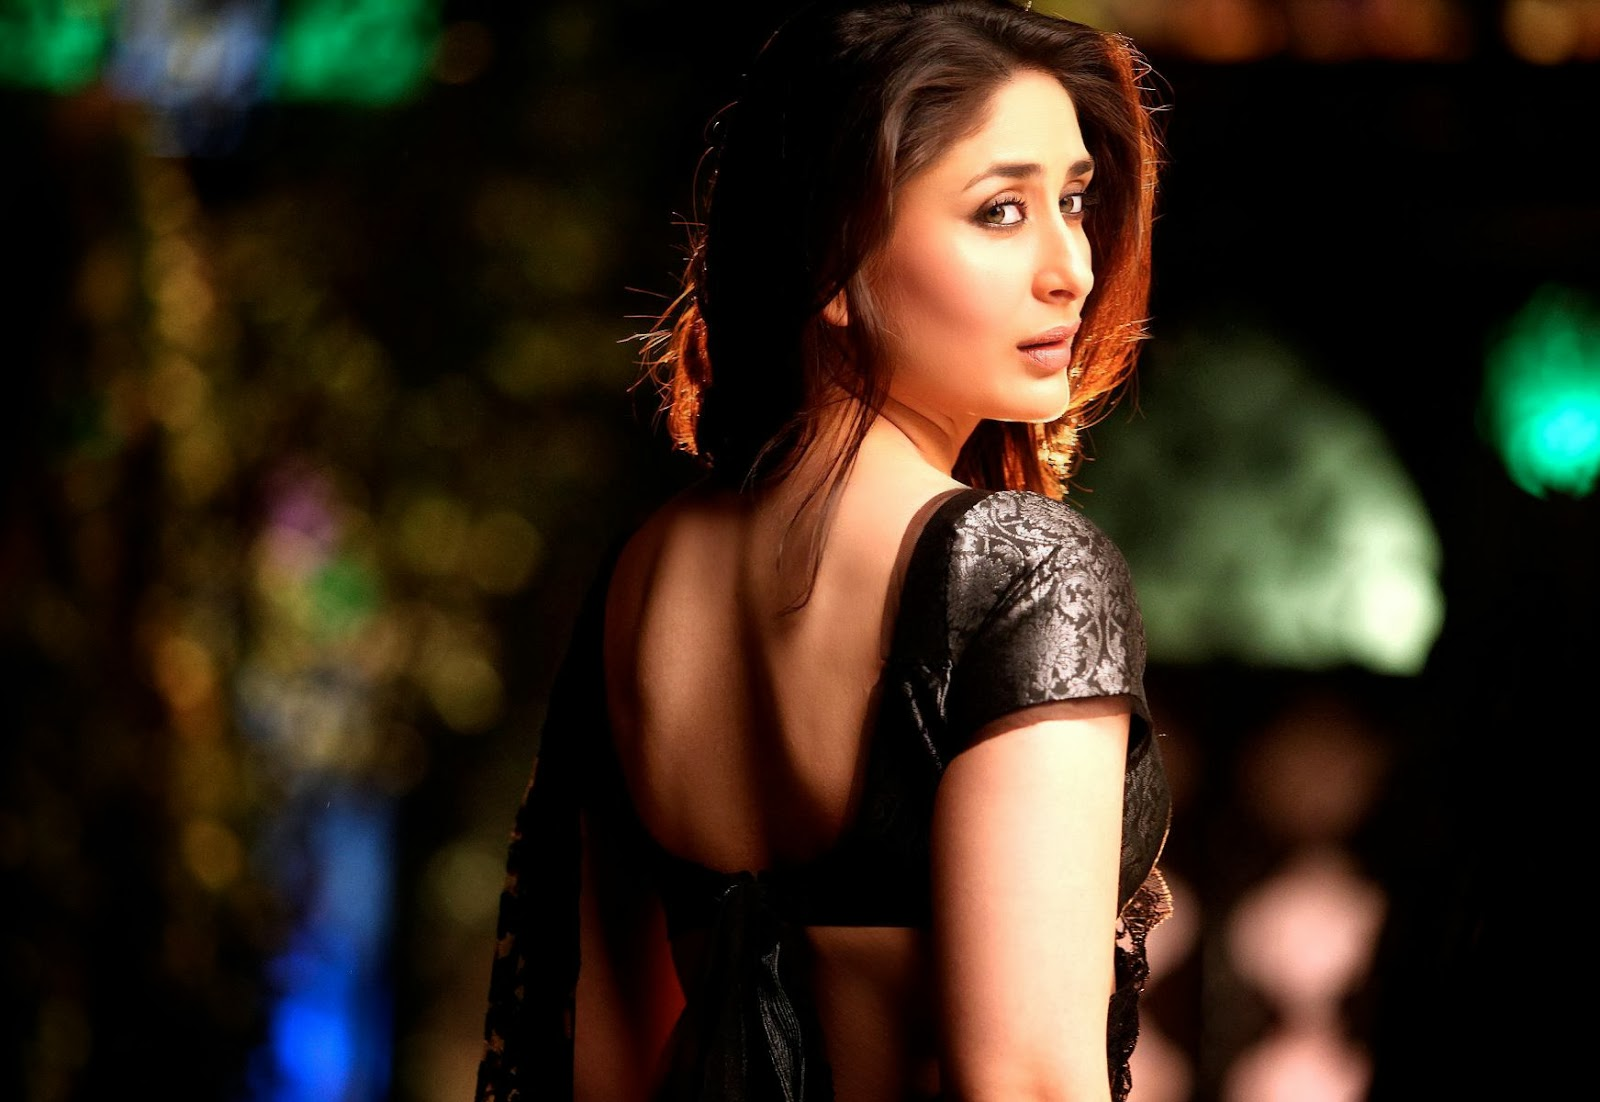 Free Bollywood Wallpapers Download 42 Wallpapers: Kareena Kapoor Wallpapers Free Download